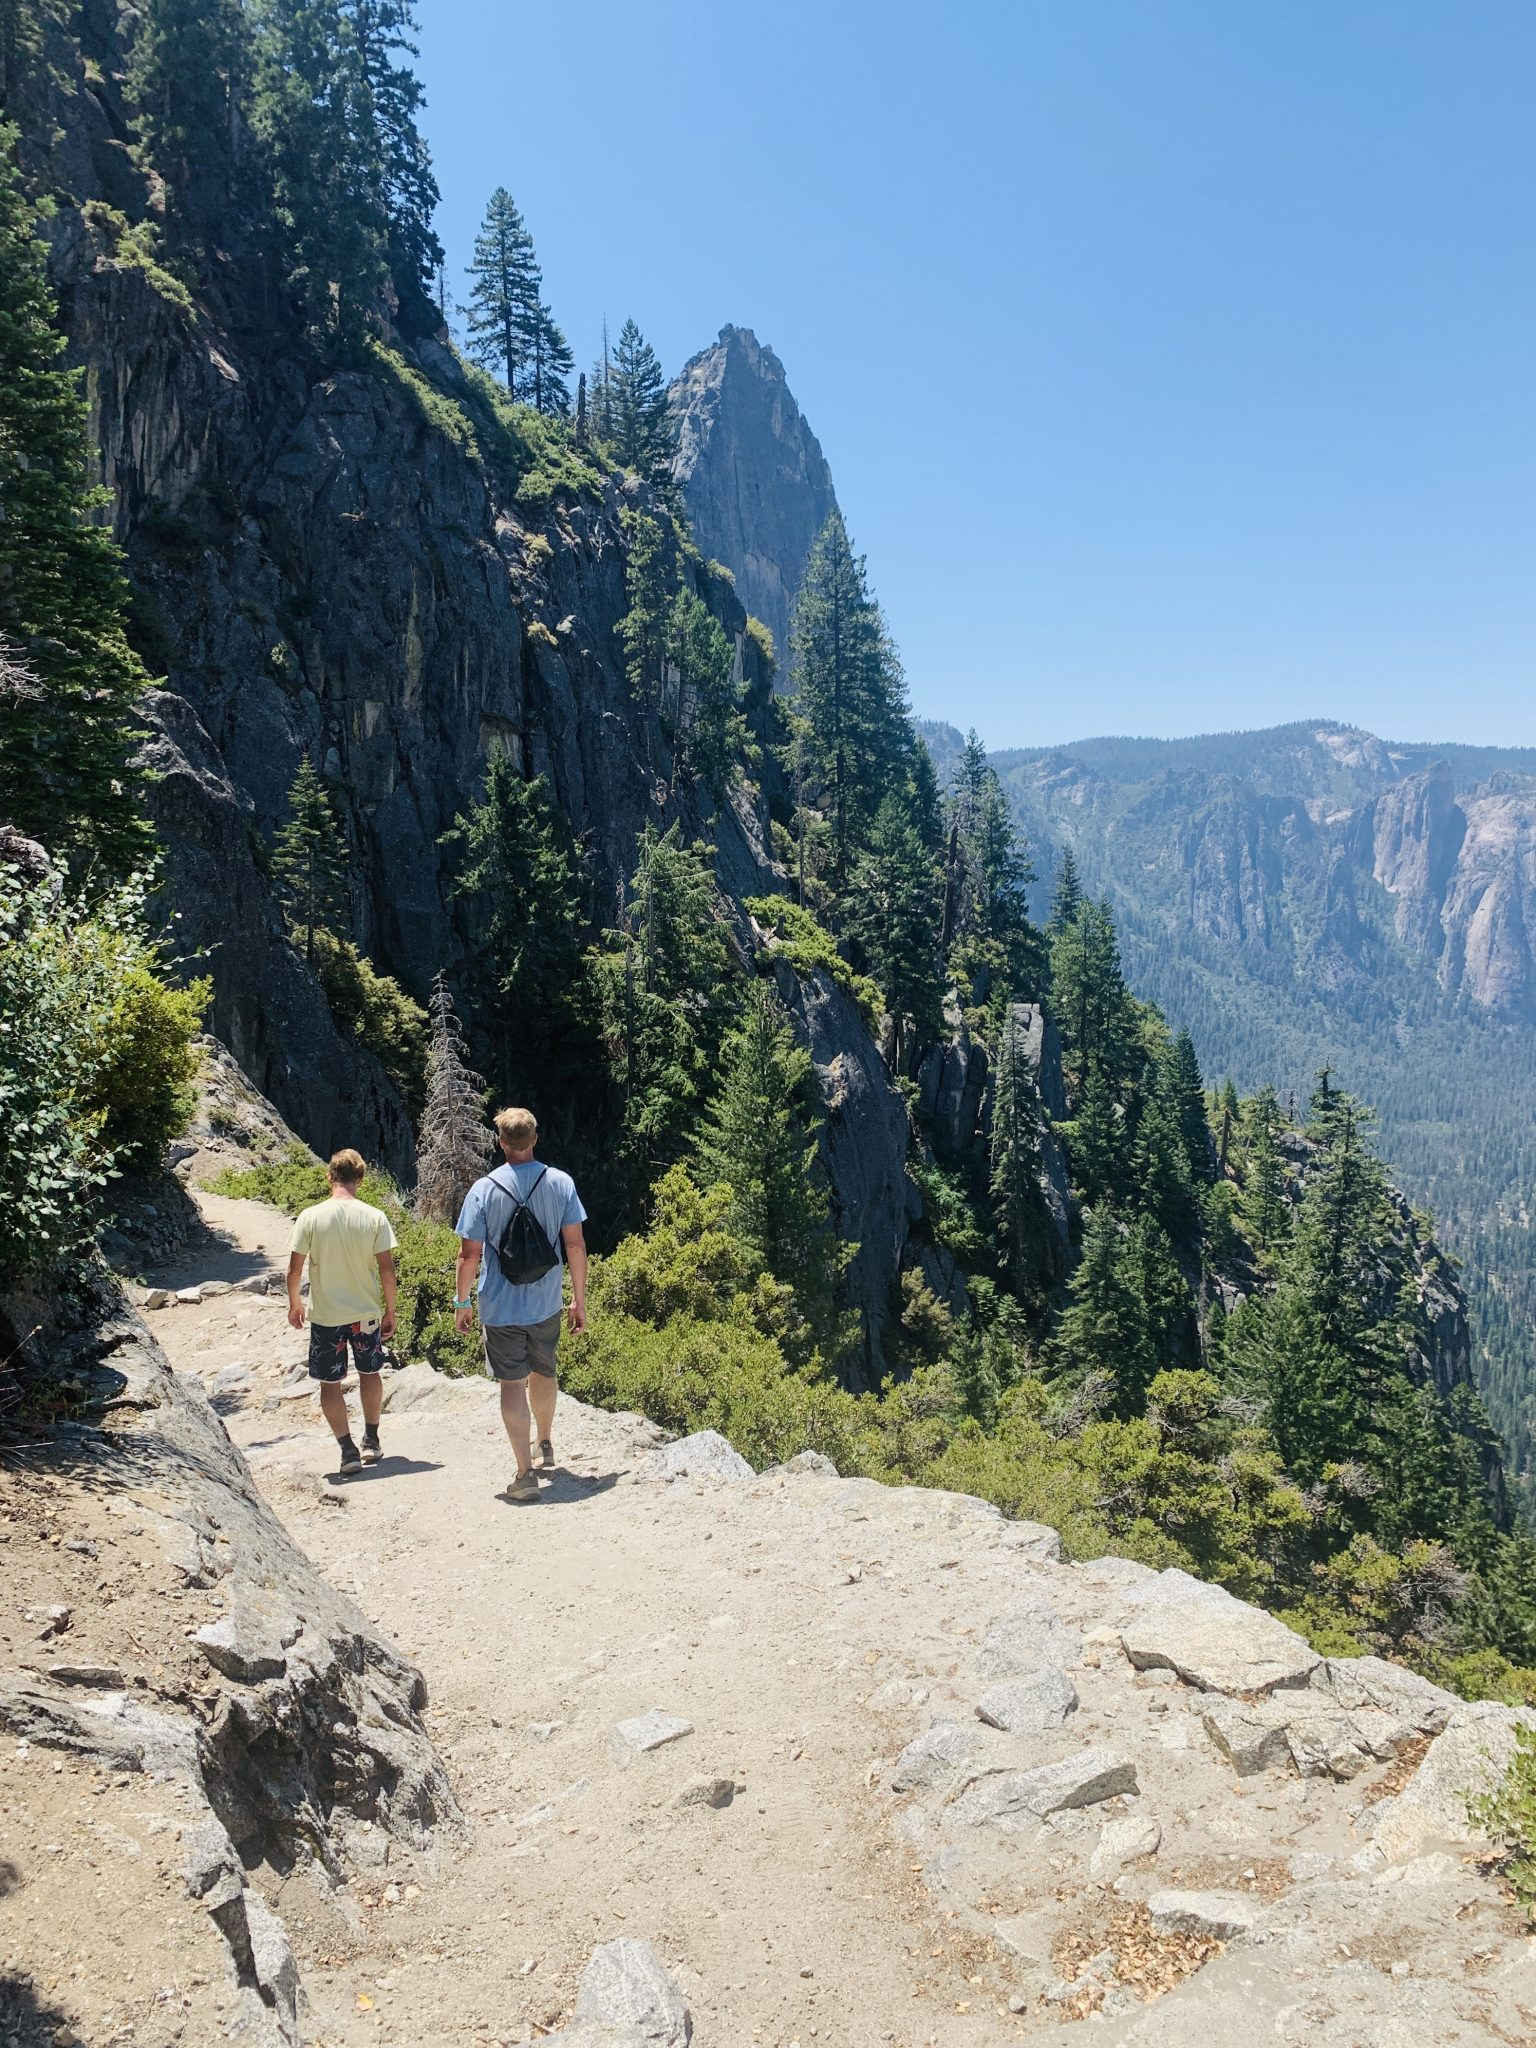 four mile hike in yosemite national park